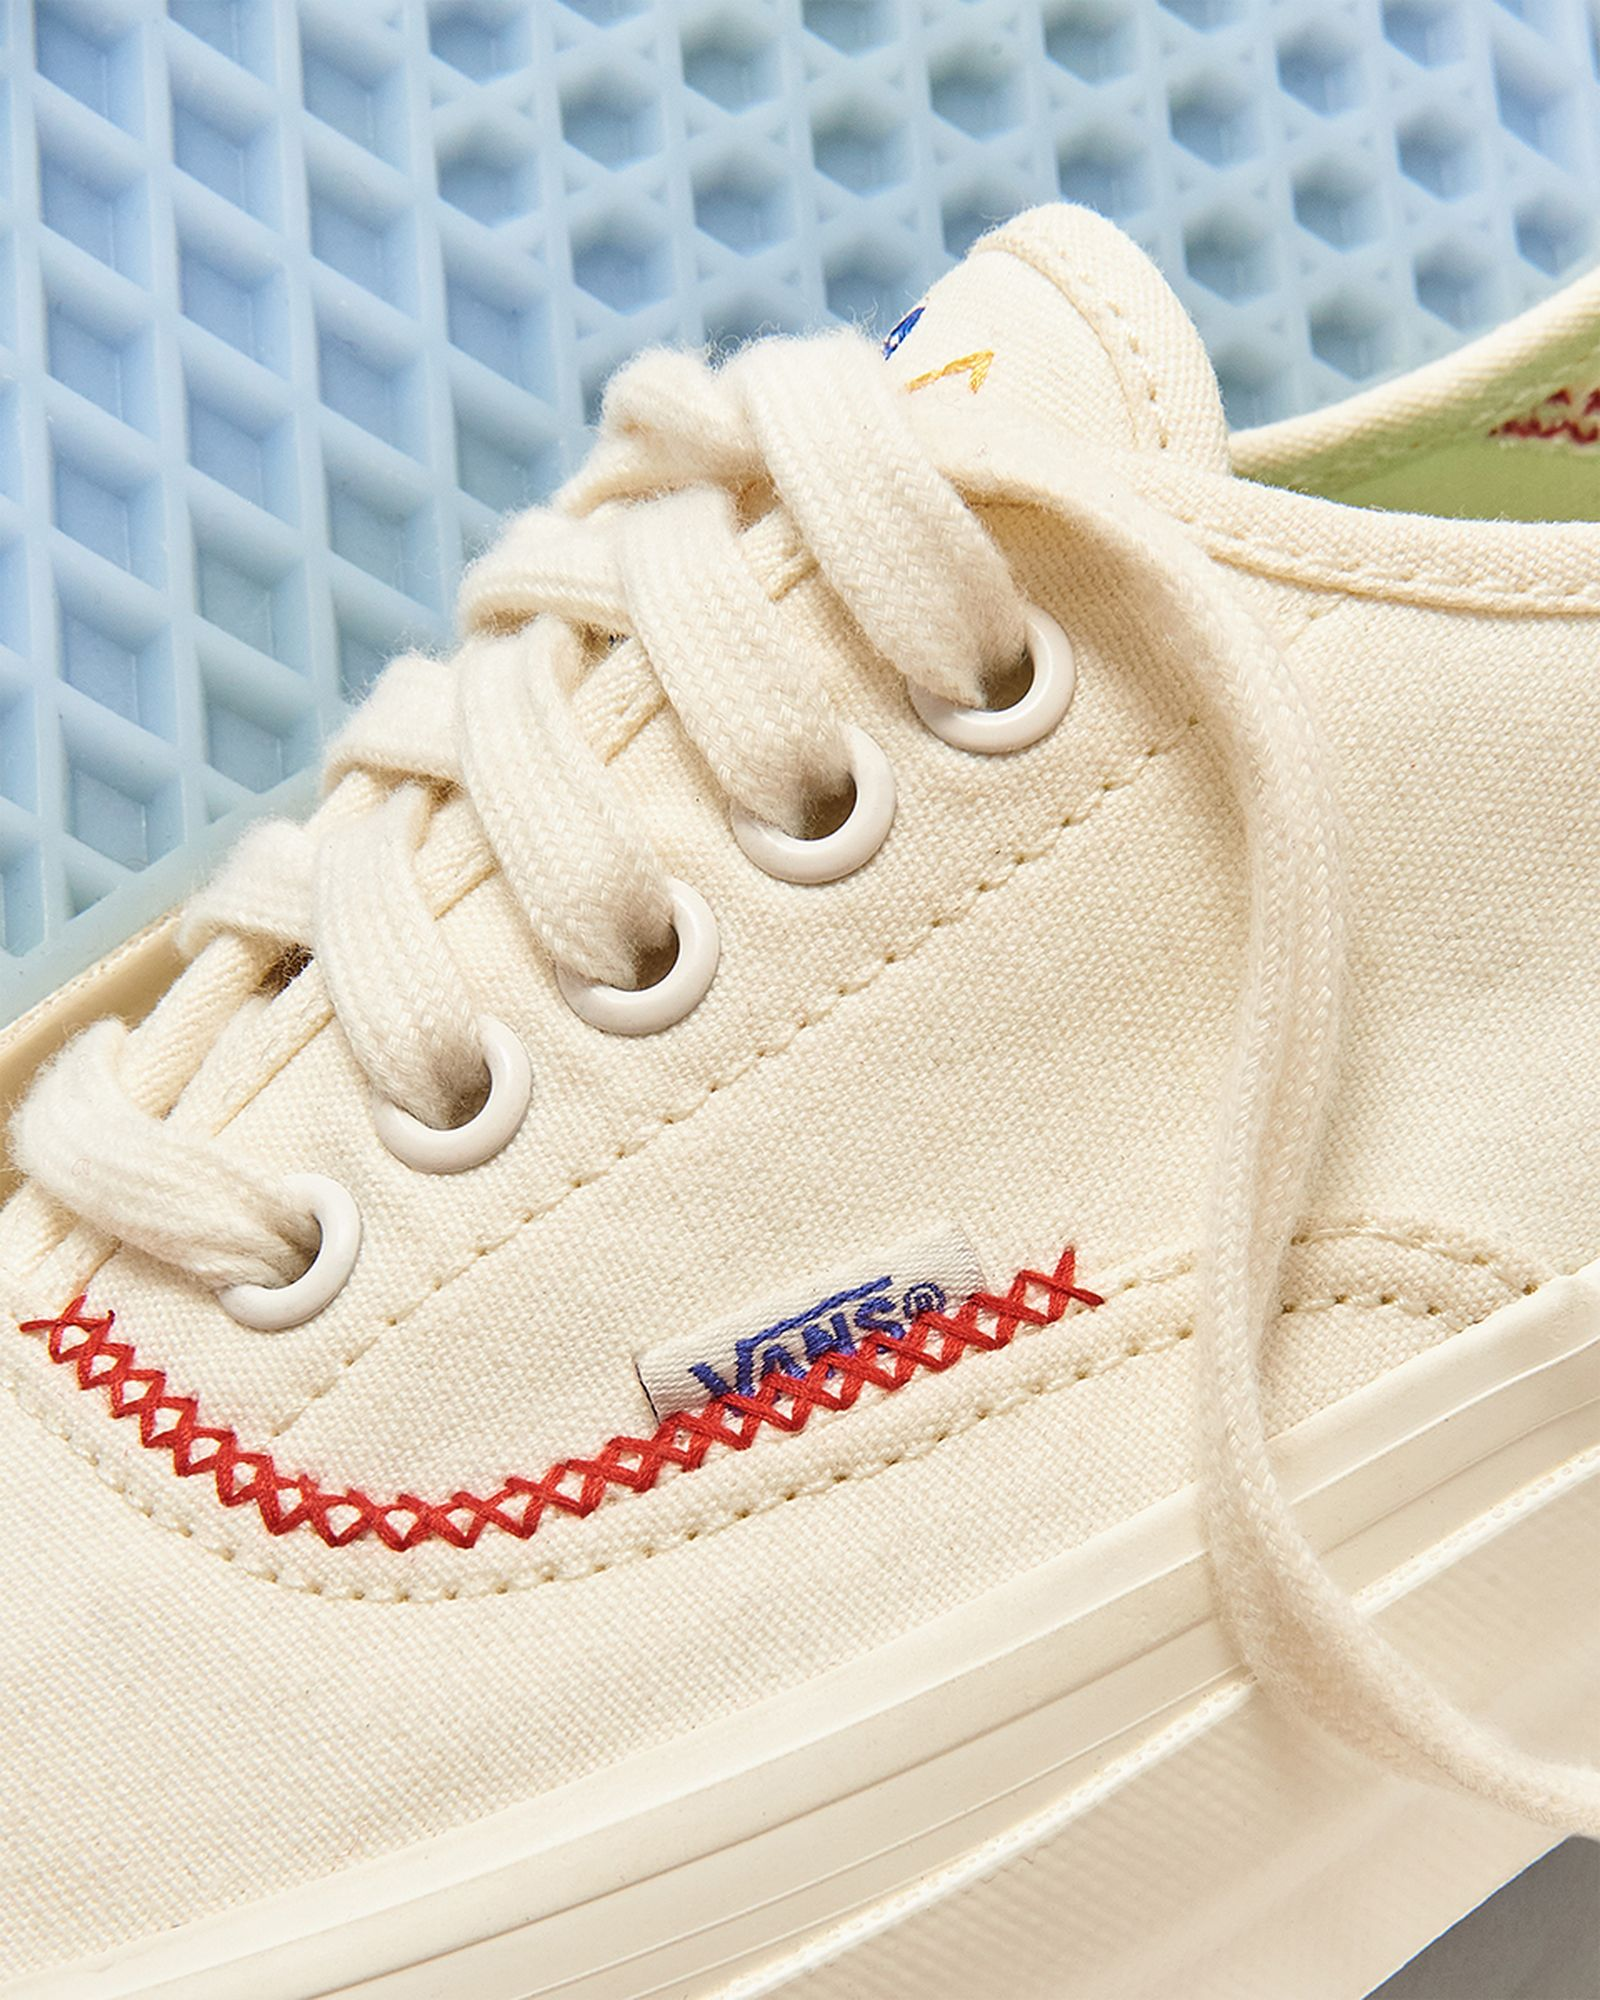 madhappy-vault-by-vans-og-style-43-lx-release-date-price-15